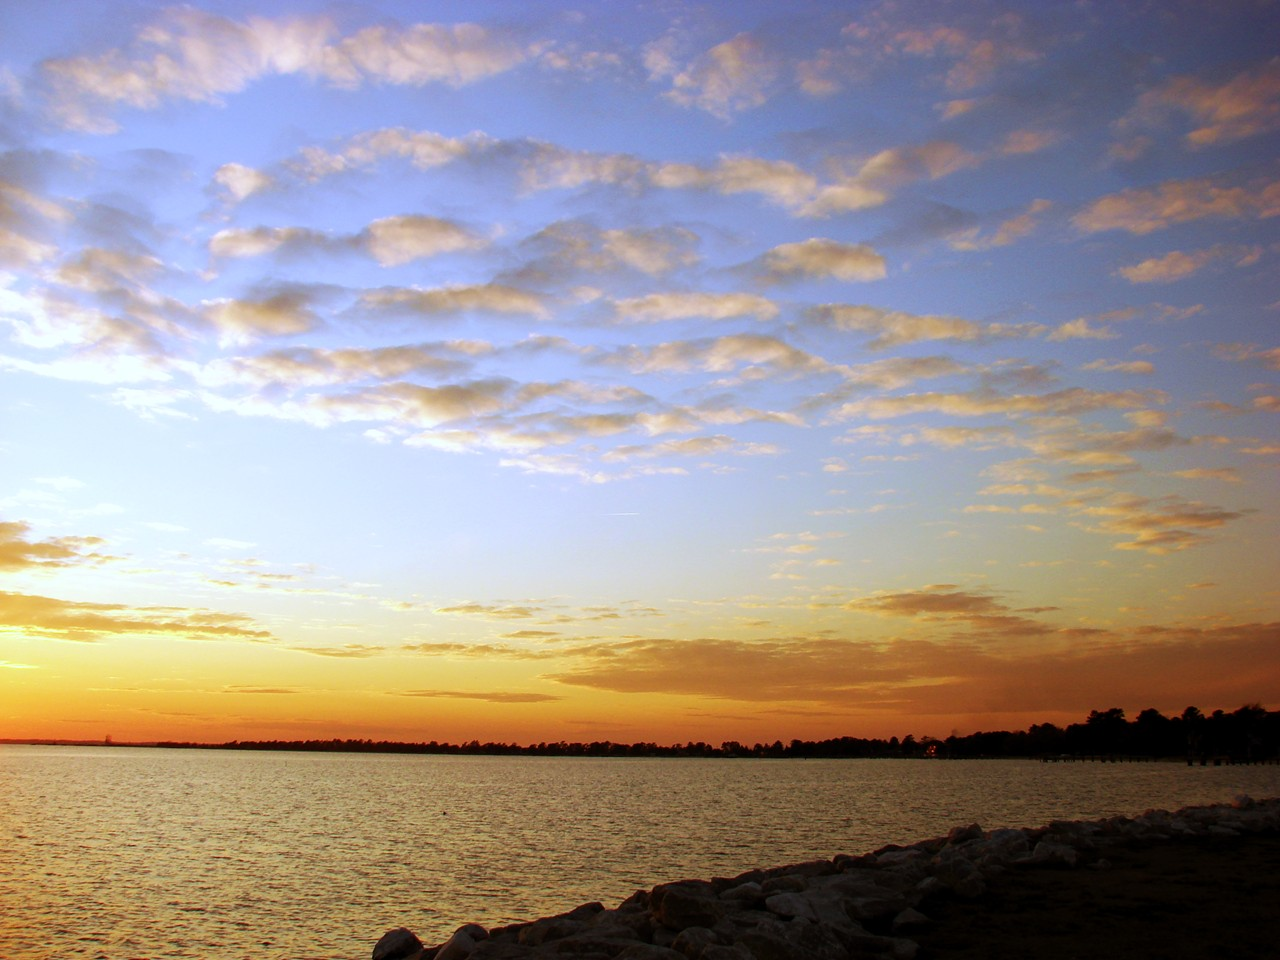 Sunset at Piney Point, MD